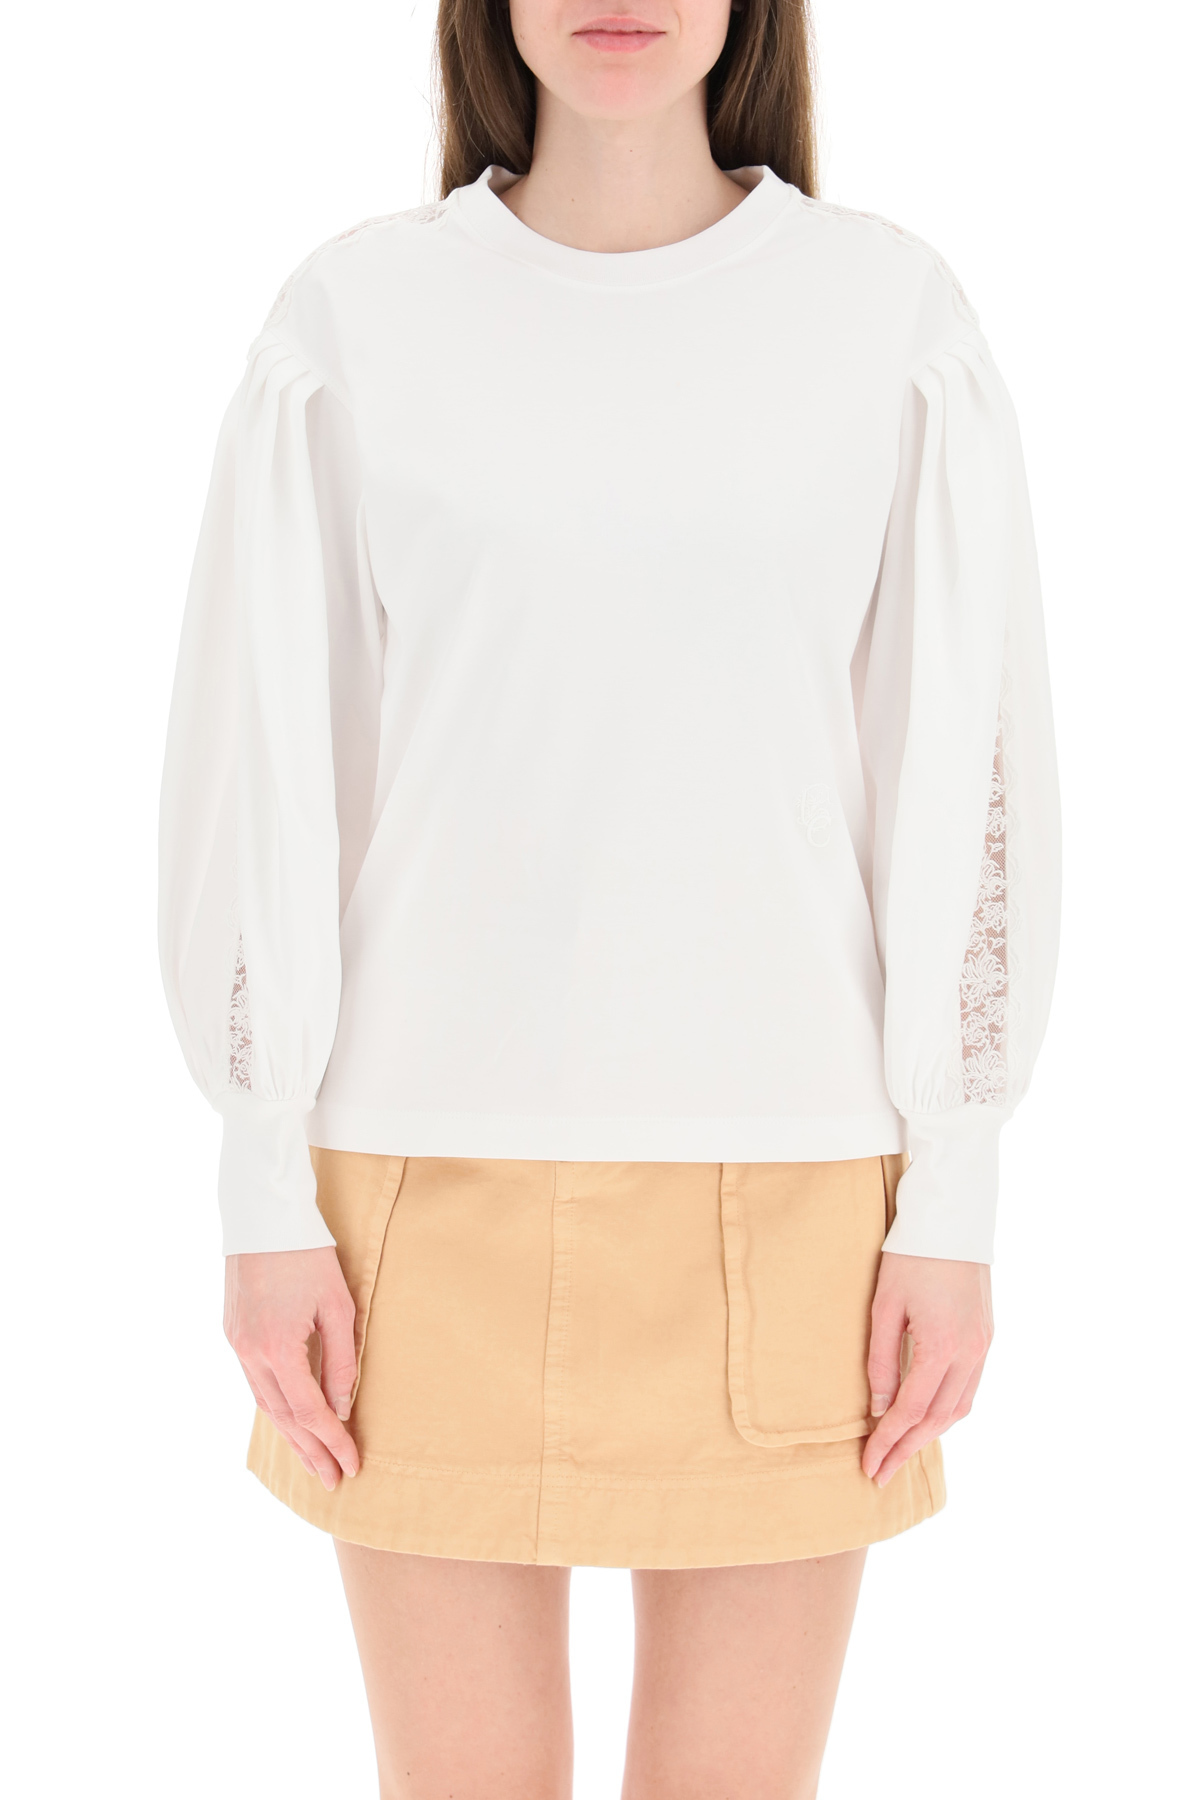 Chloe' t-shirt jersey con inserti in pizzo